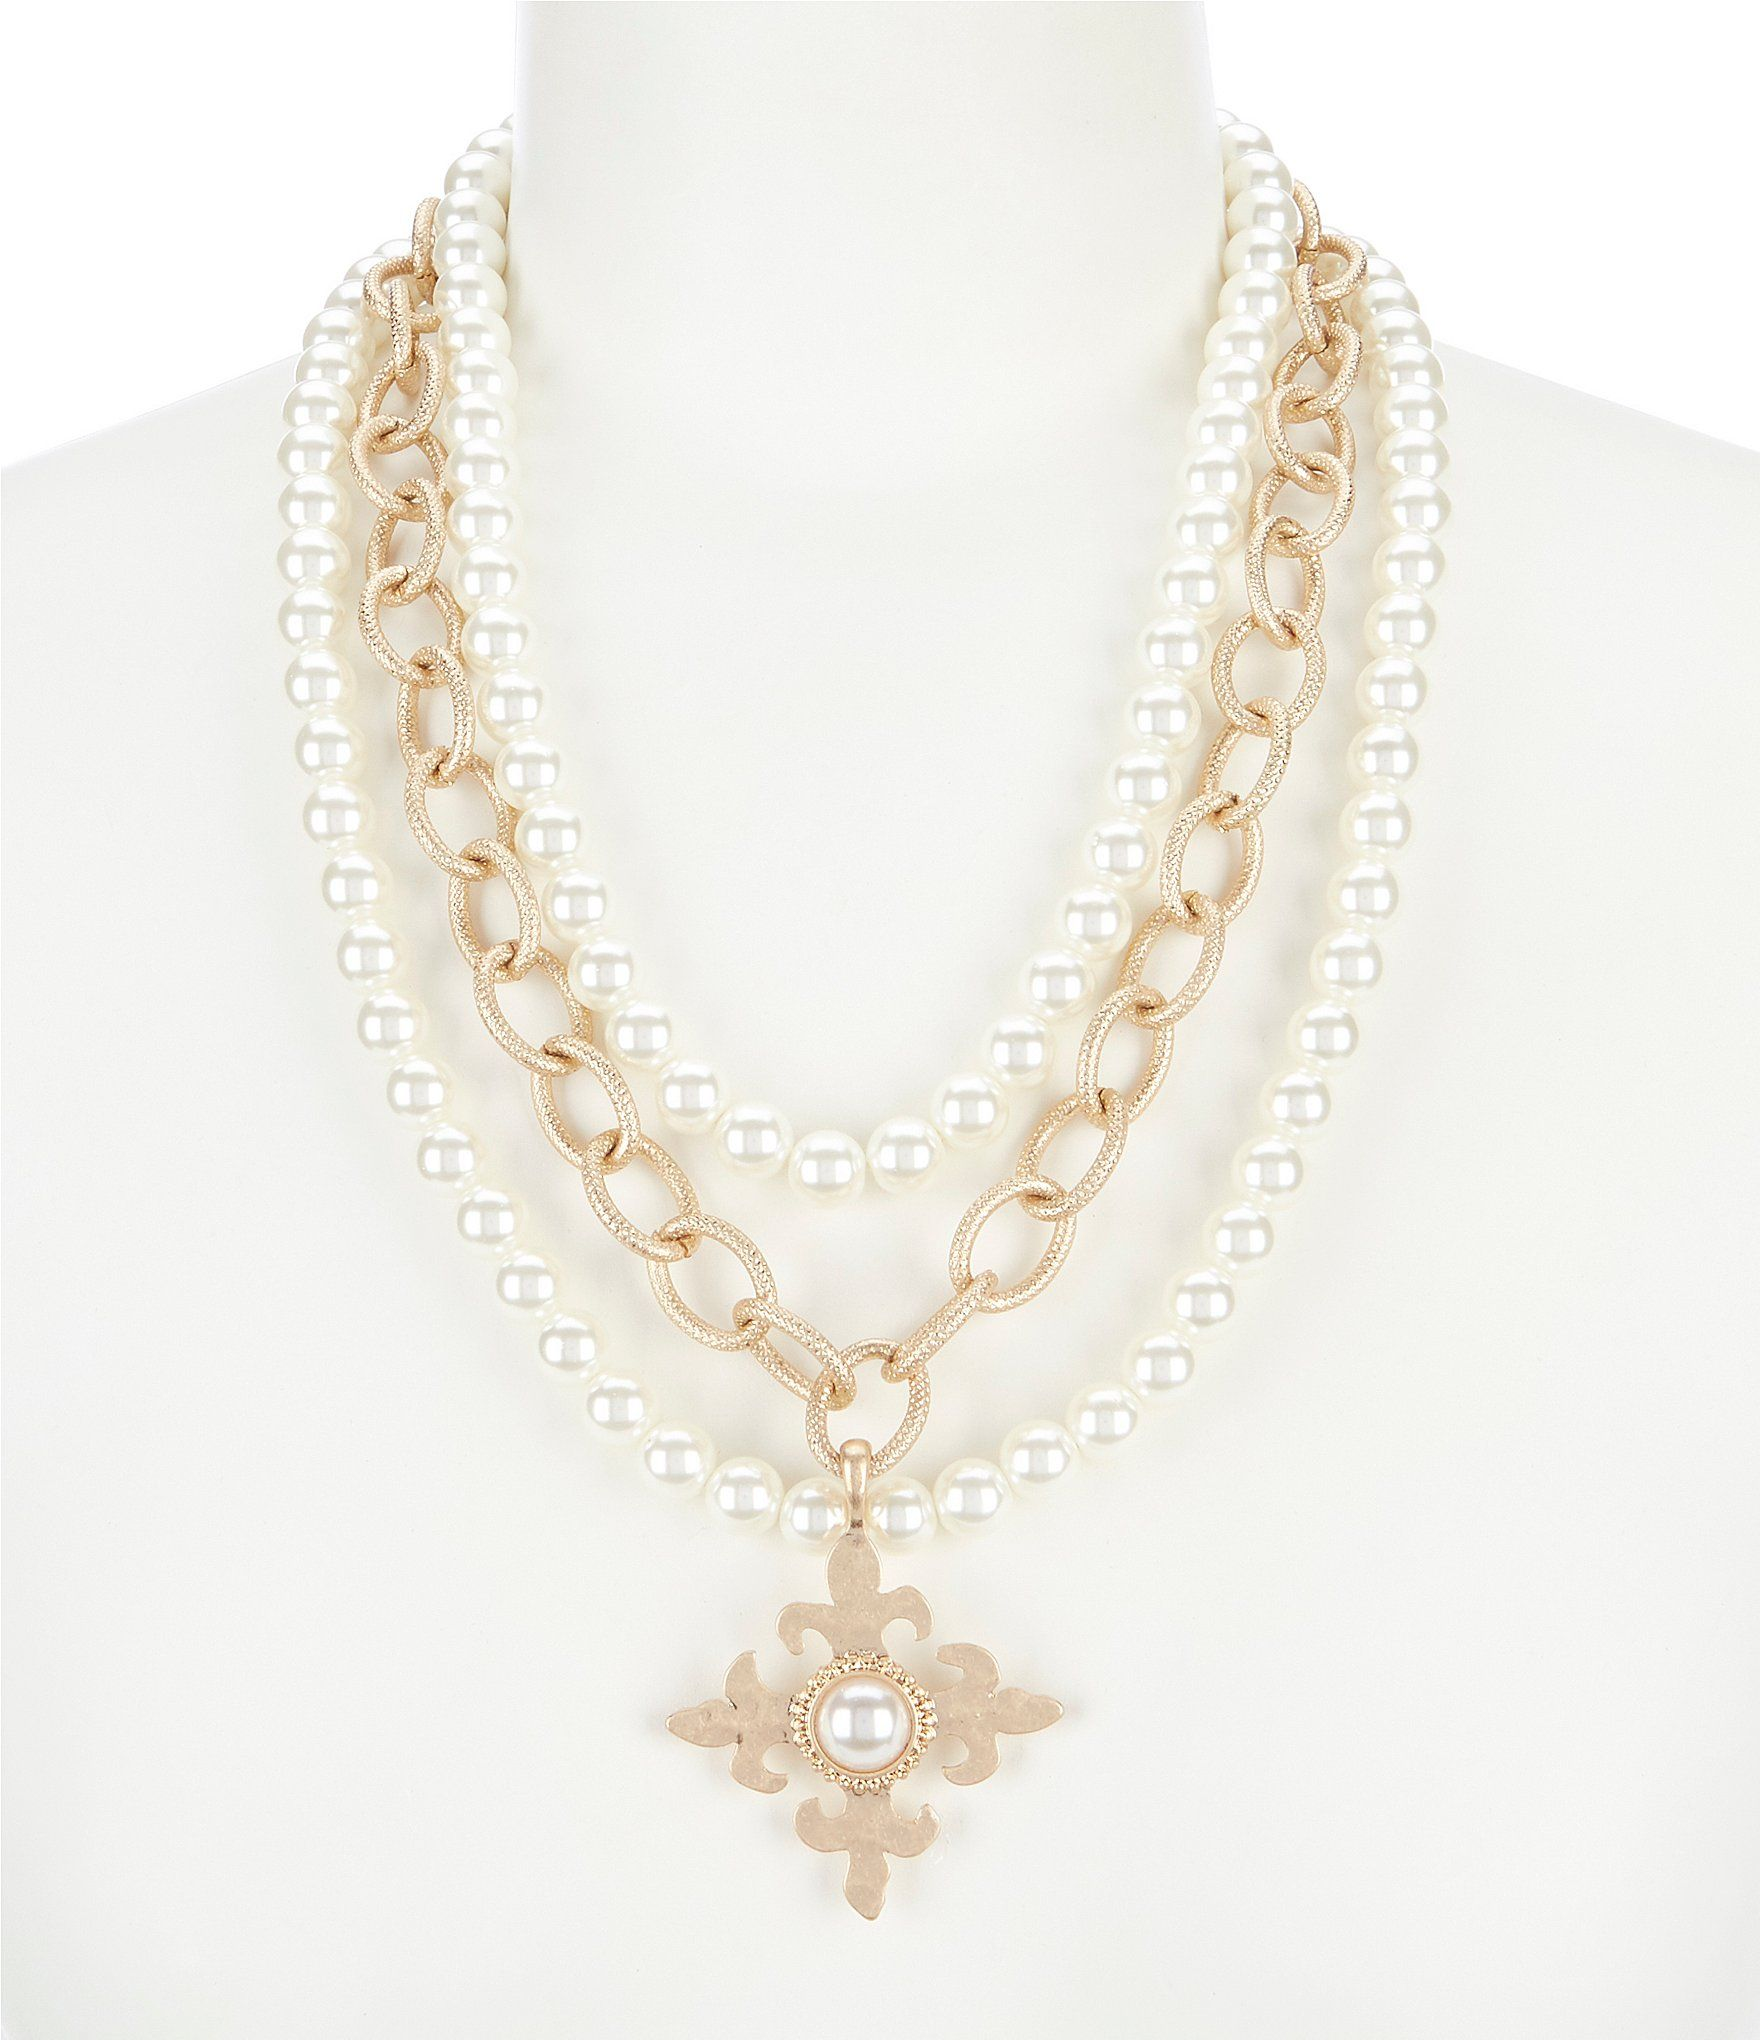 8d3d47ec7d00c Southern Living Husk Multi Strand Pearl Cross Necklace #Dillards ...